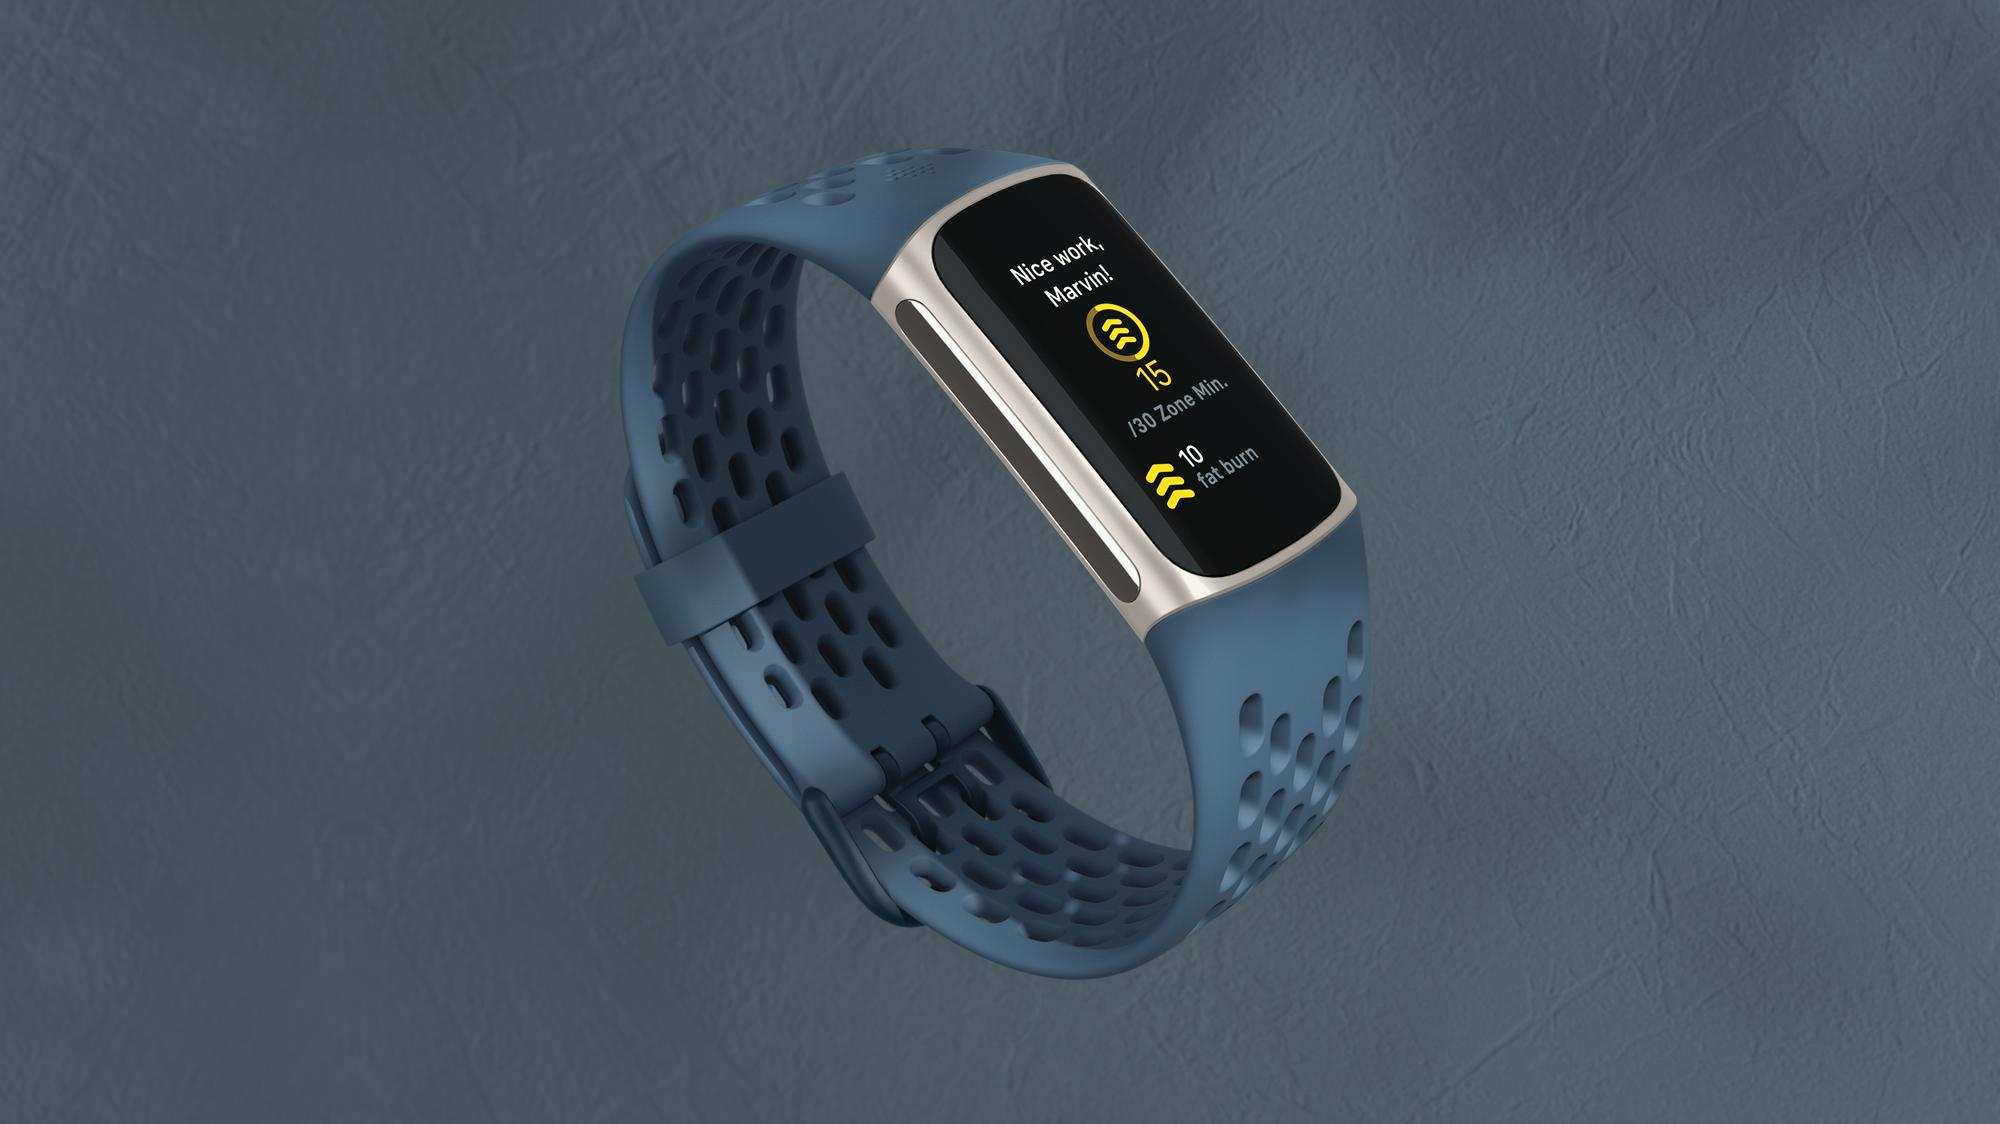 Her er Fitbit Charge 5